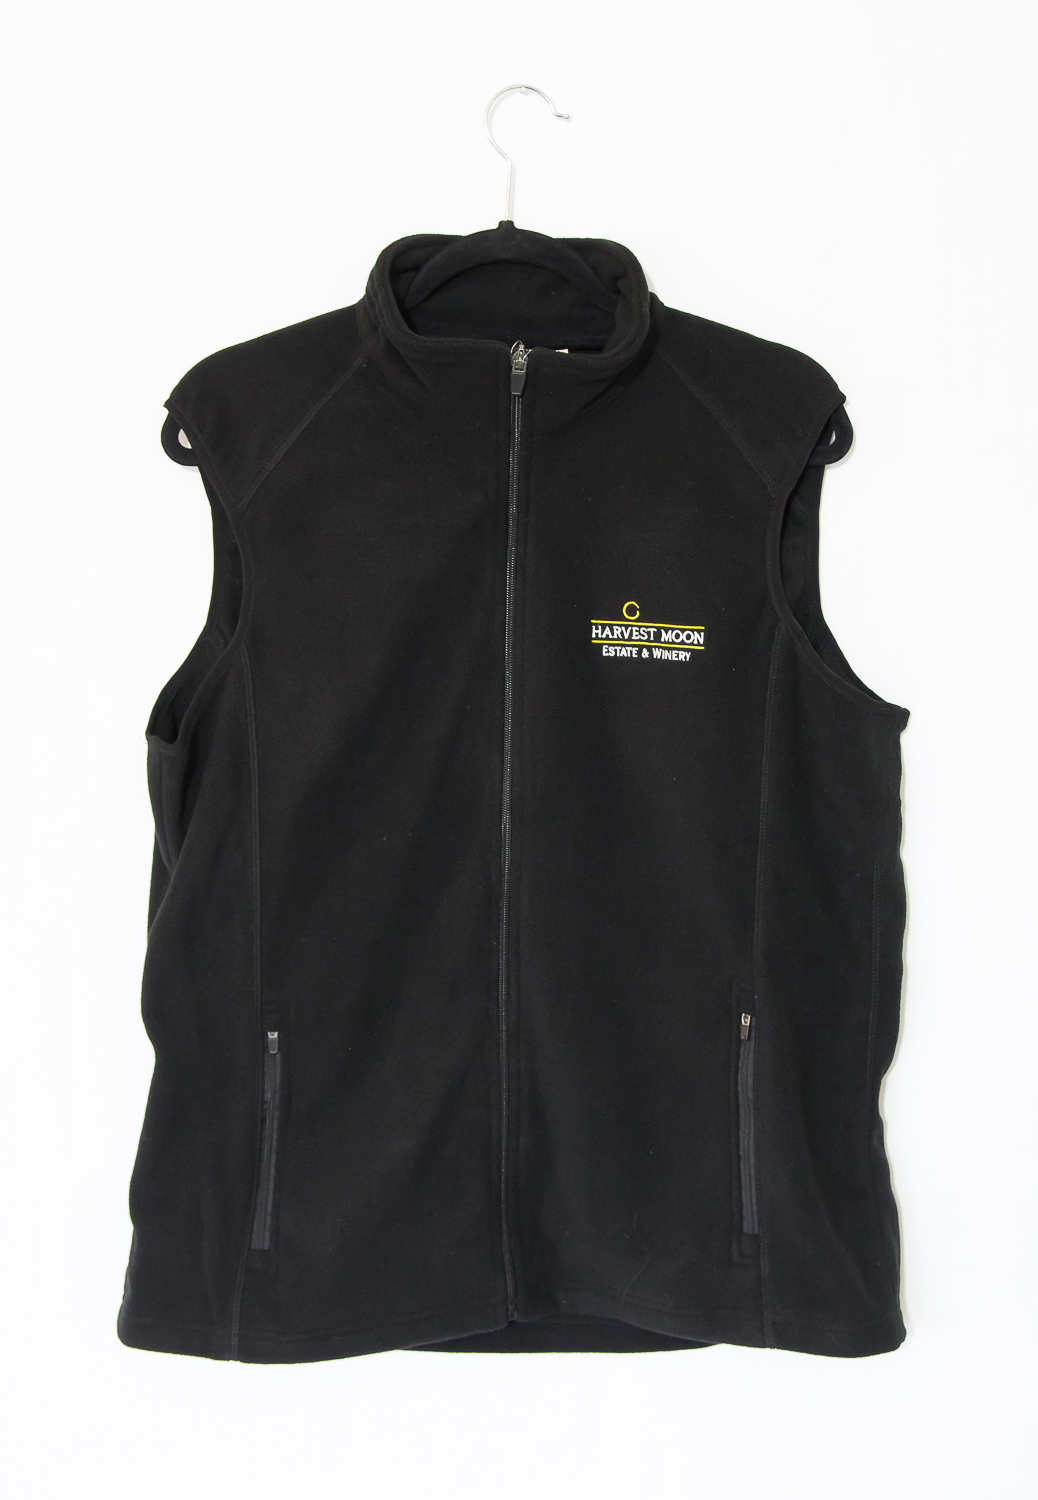 Clothing - Men's Black Vest